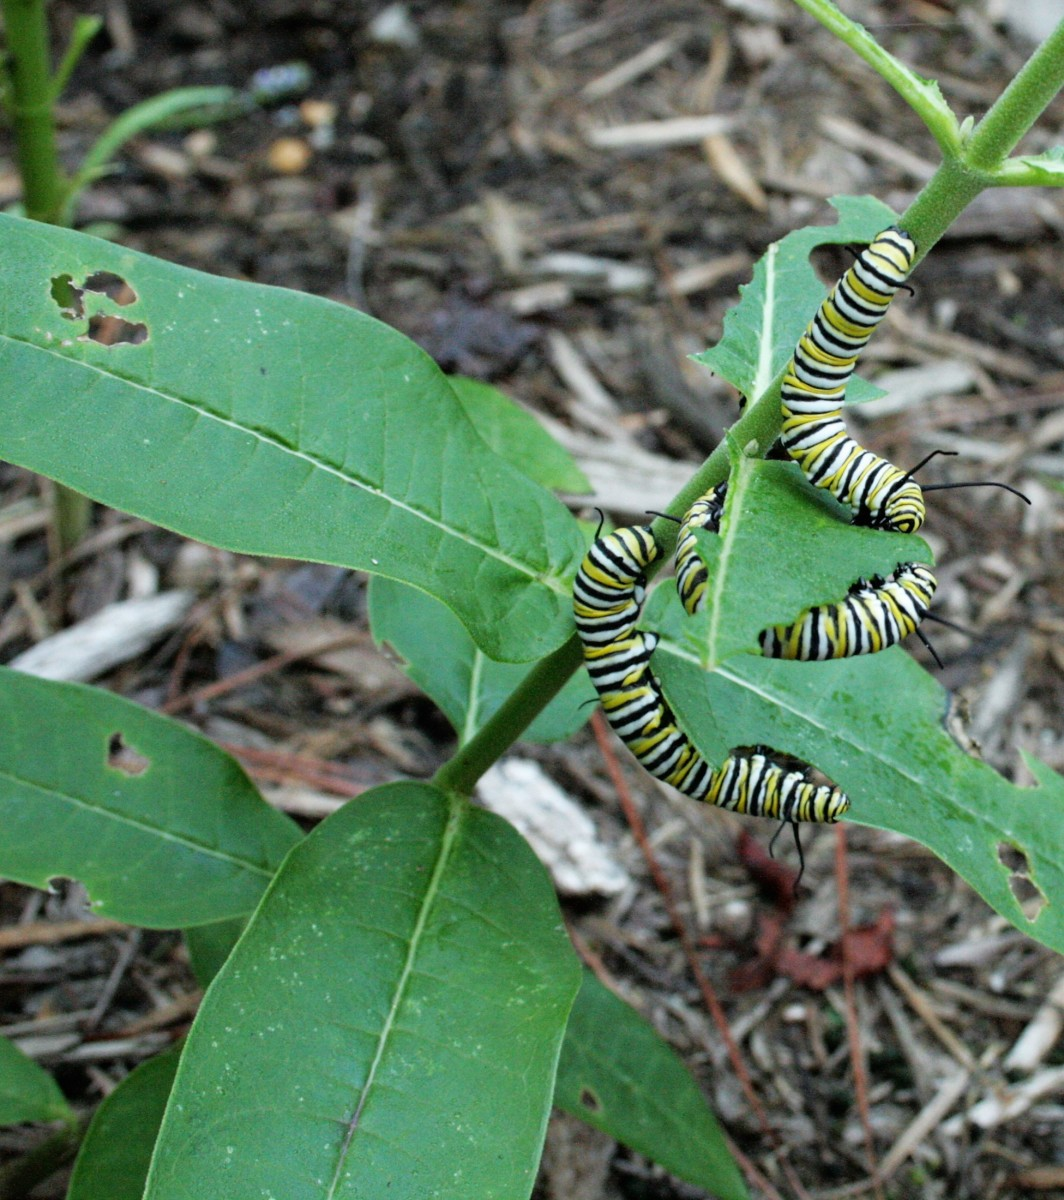 The caterpillars stripped our common milkweed plants of leaves several times. Tropical milkweed was their second favorite, followed by whorled.